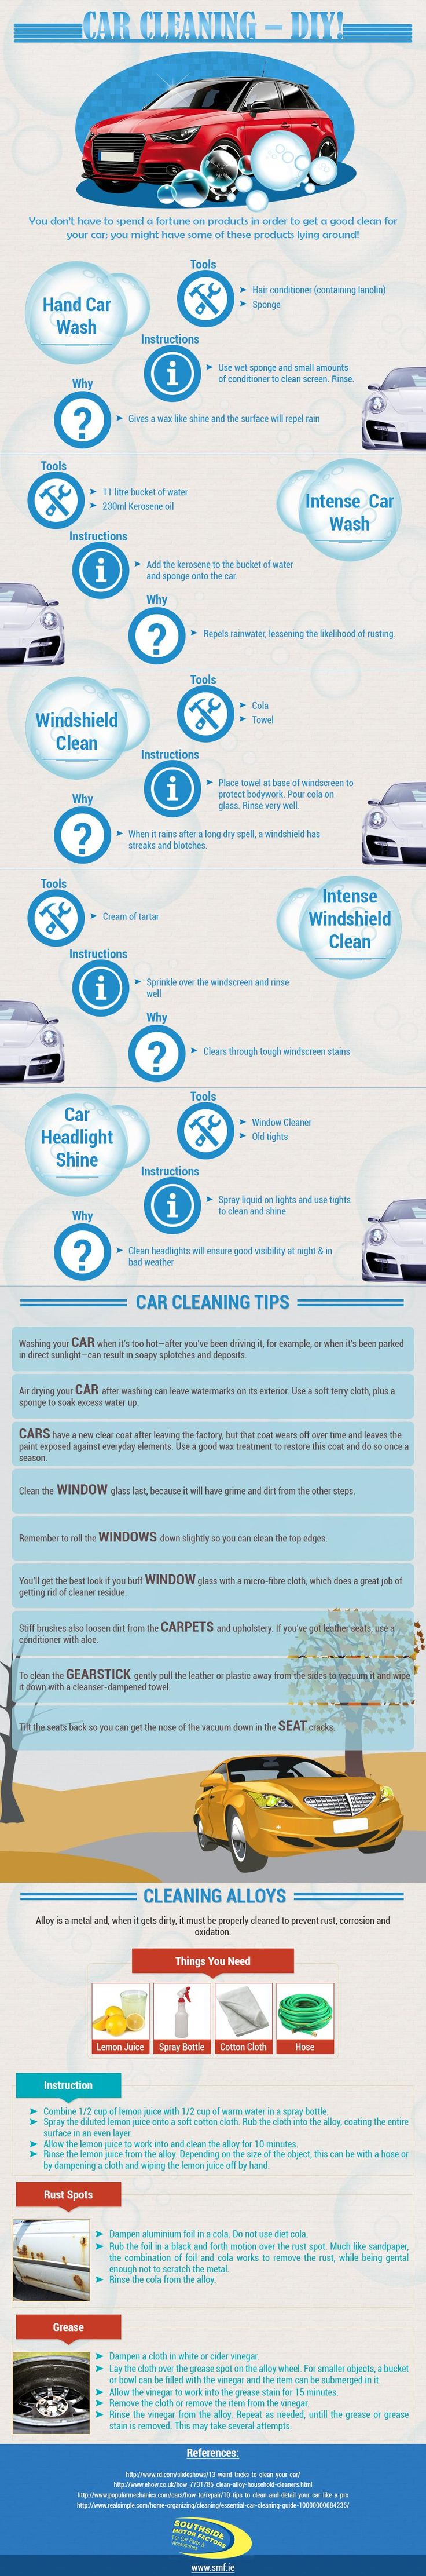 Visualistan: Car Cleaning - DIY #infographic